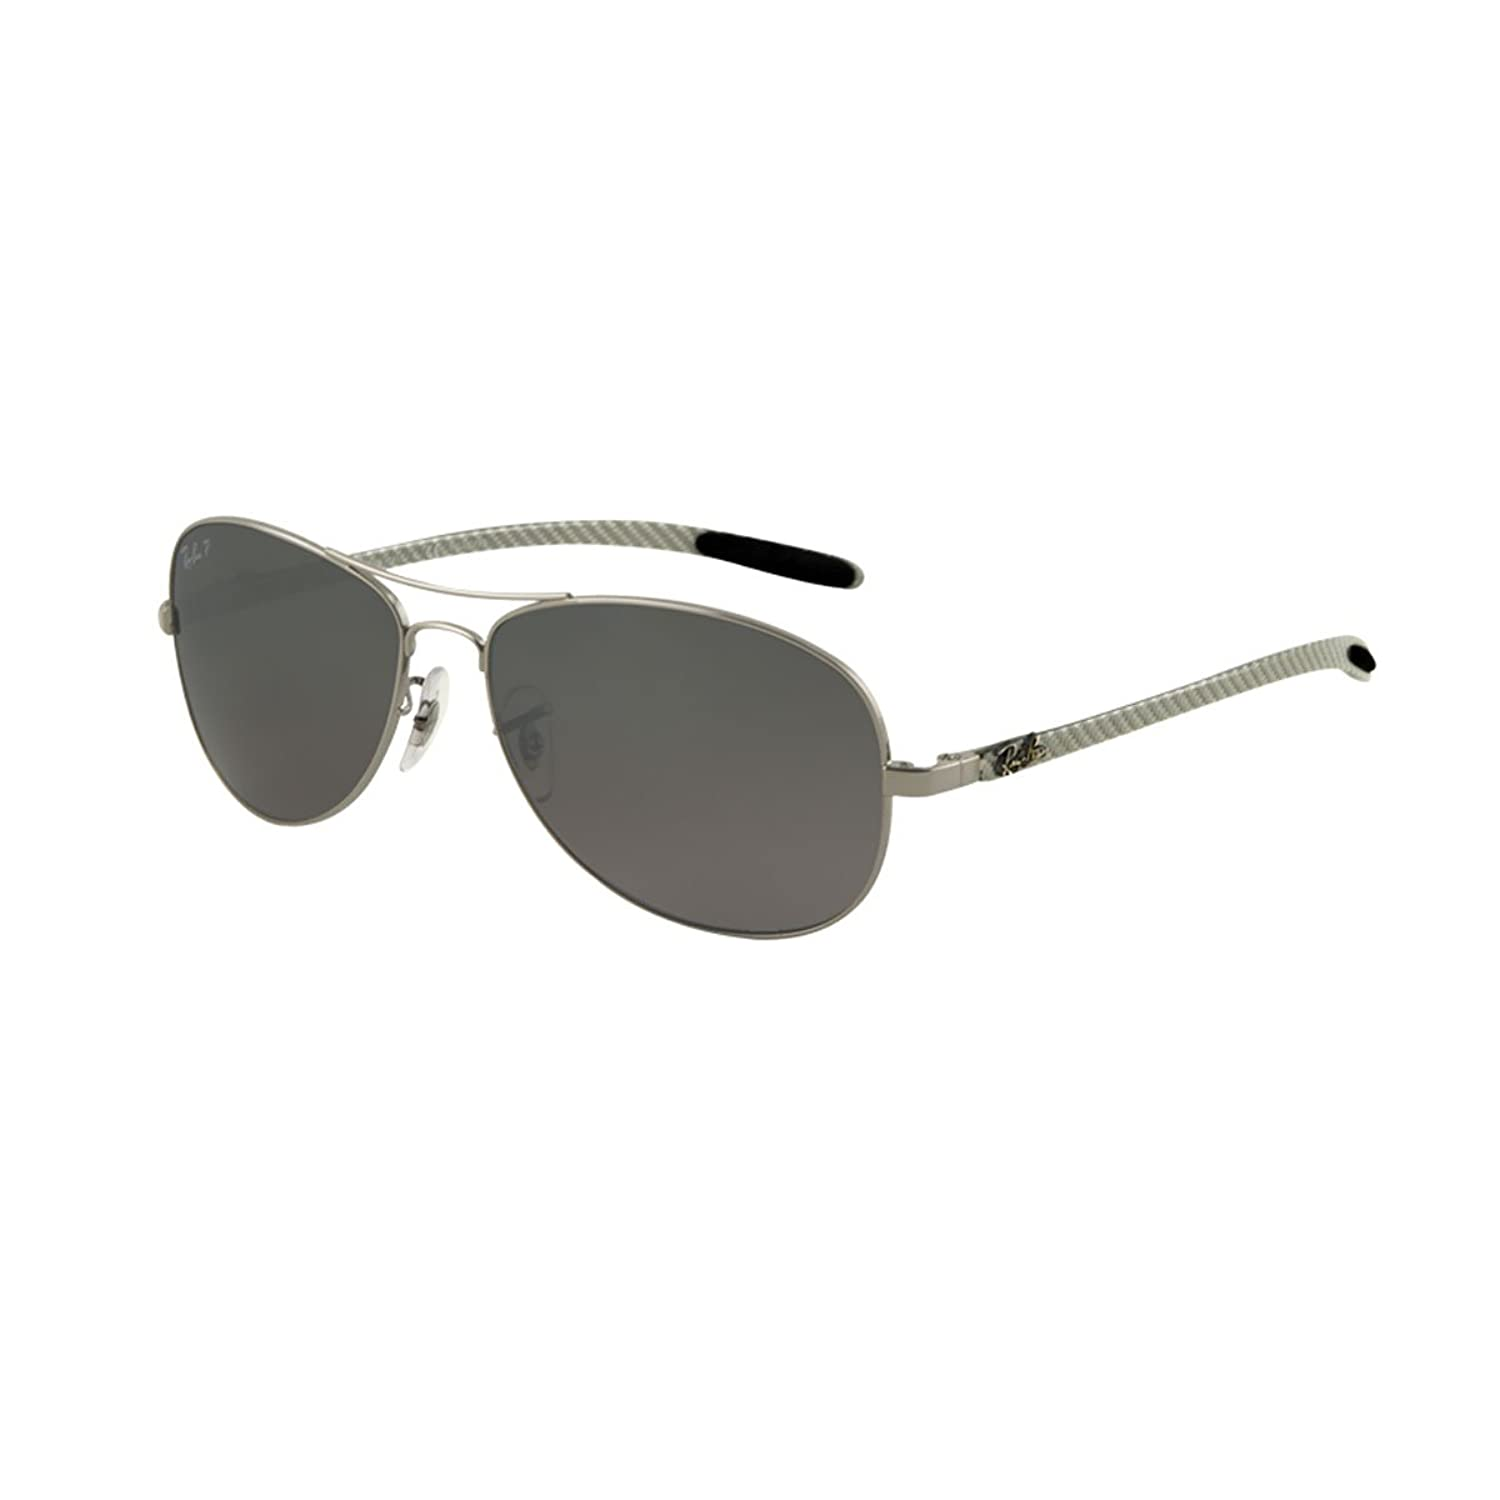 Amazon.com: Ray-Ban RB8301 - GUNMETAL Frame CRY. POLAR GRAY MIR SILVER GR Lenses 59mm Polarized: Ray-Ban: Clothing